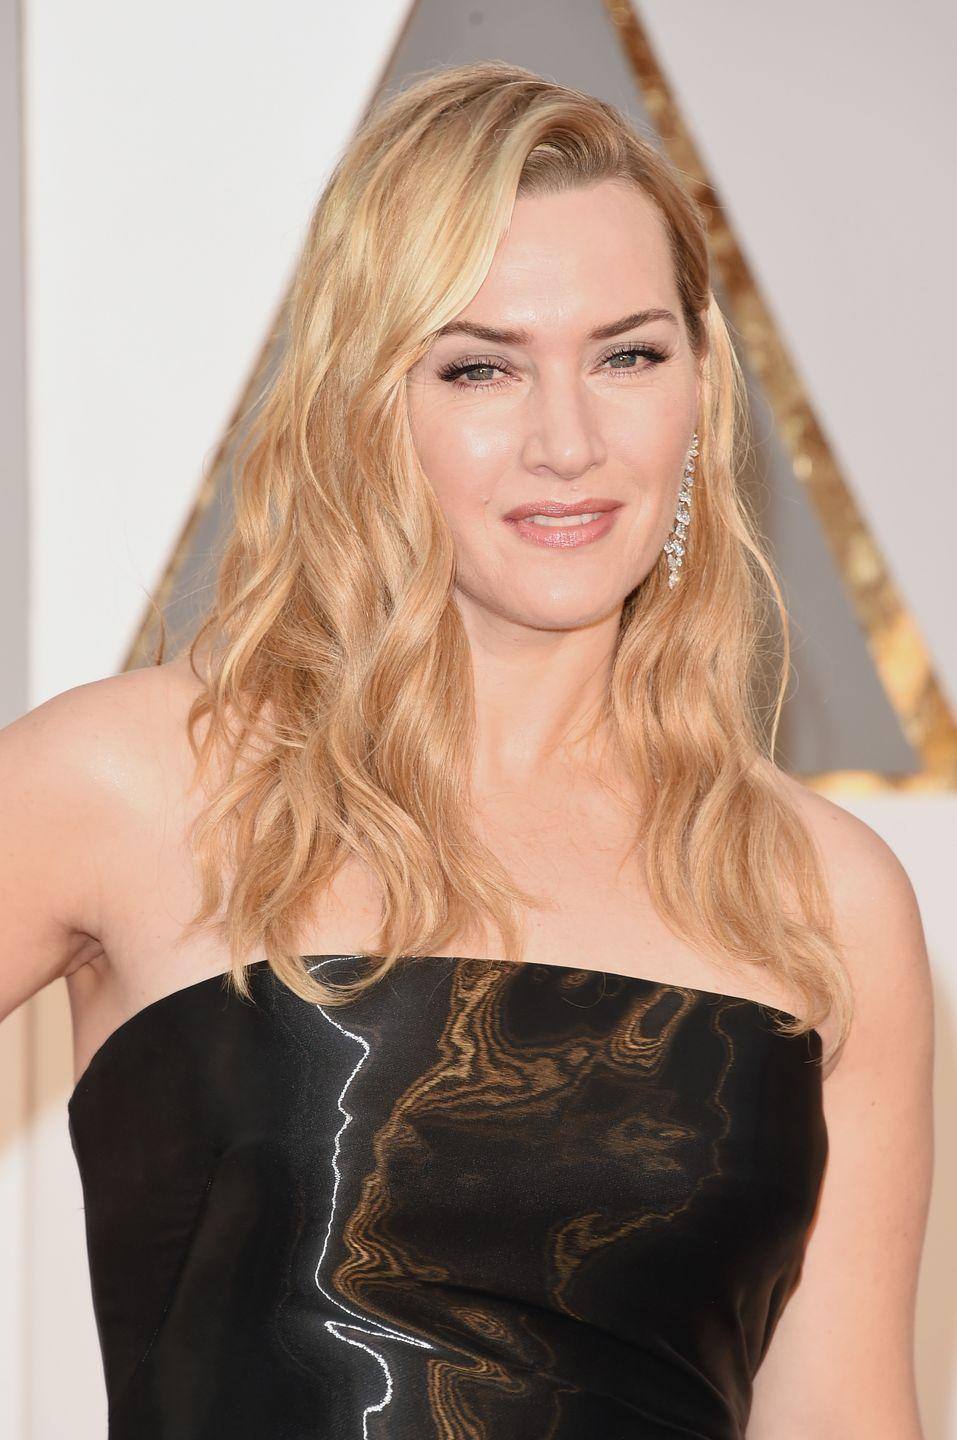 """<p>""""<a href=""""https://www.harpersbazaar.com/uk/fashion/fashion-news/news/a8334/kate-winslet-on-motherhood/"""" rel=""""nofollow noopener"""" target=""""_blank"""" data-ylk=""""slk:What I do feel"""" class=""""link rapid-noclick-resp"""">What I do feel</a>, very deep within myself, is a strength that will not fail me. You have to carry on as a mother, no matter what, and that's what I've always done."""" </p>"""